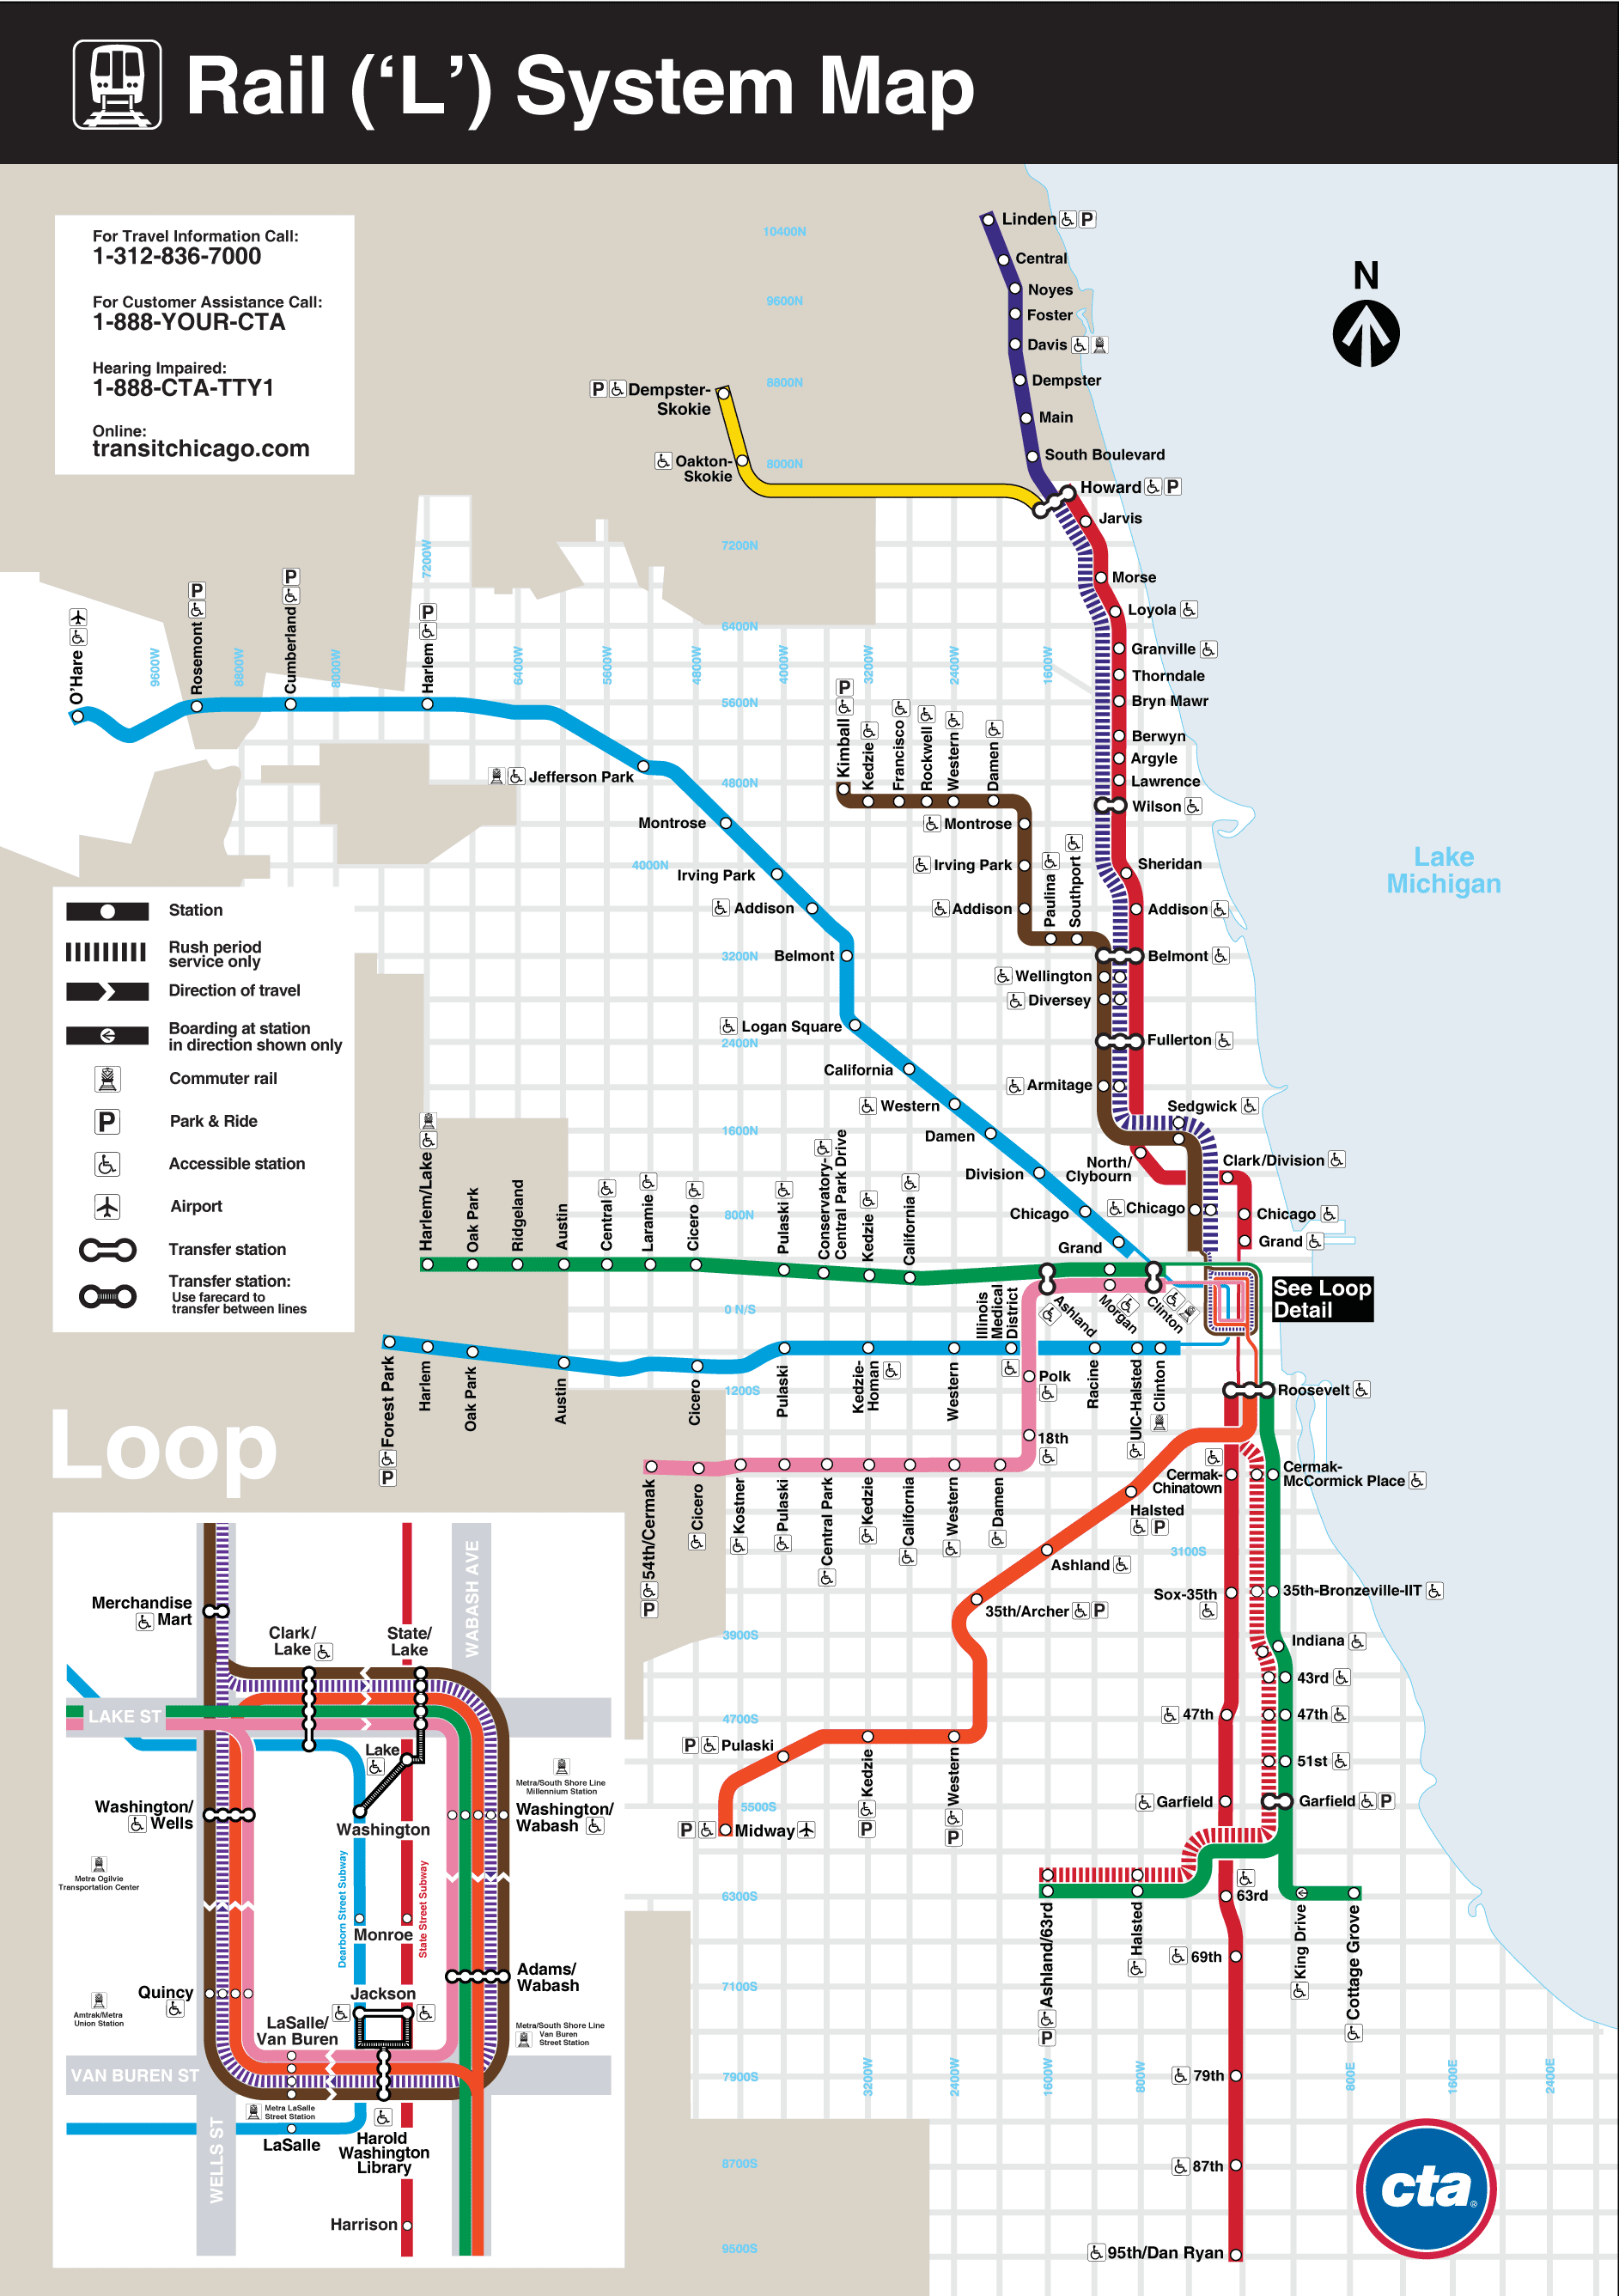 Metro Navigation in Chicago, Illinois, USA on green line, the loop, pink line, chicago belmont map, los angeles metro orange line map, chicago on map, downtown chicago map, red line, chicago metra map, chicago cta map, jackson/state, cta lines map, orange line, chicago logan square map, chicago california map, clark/lake, chicago elevated train map, purple line, red line map, chicago red line train routes, brown line, union station, chicago points of interest map, chicago area school district map, chicago world's fair map, pink line map, chicago city map, chicago zip map, chicago neighborhood map, forest park, chicago transit authority, yellow line,